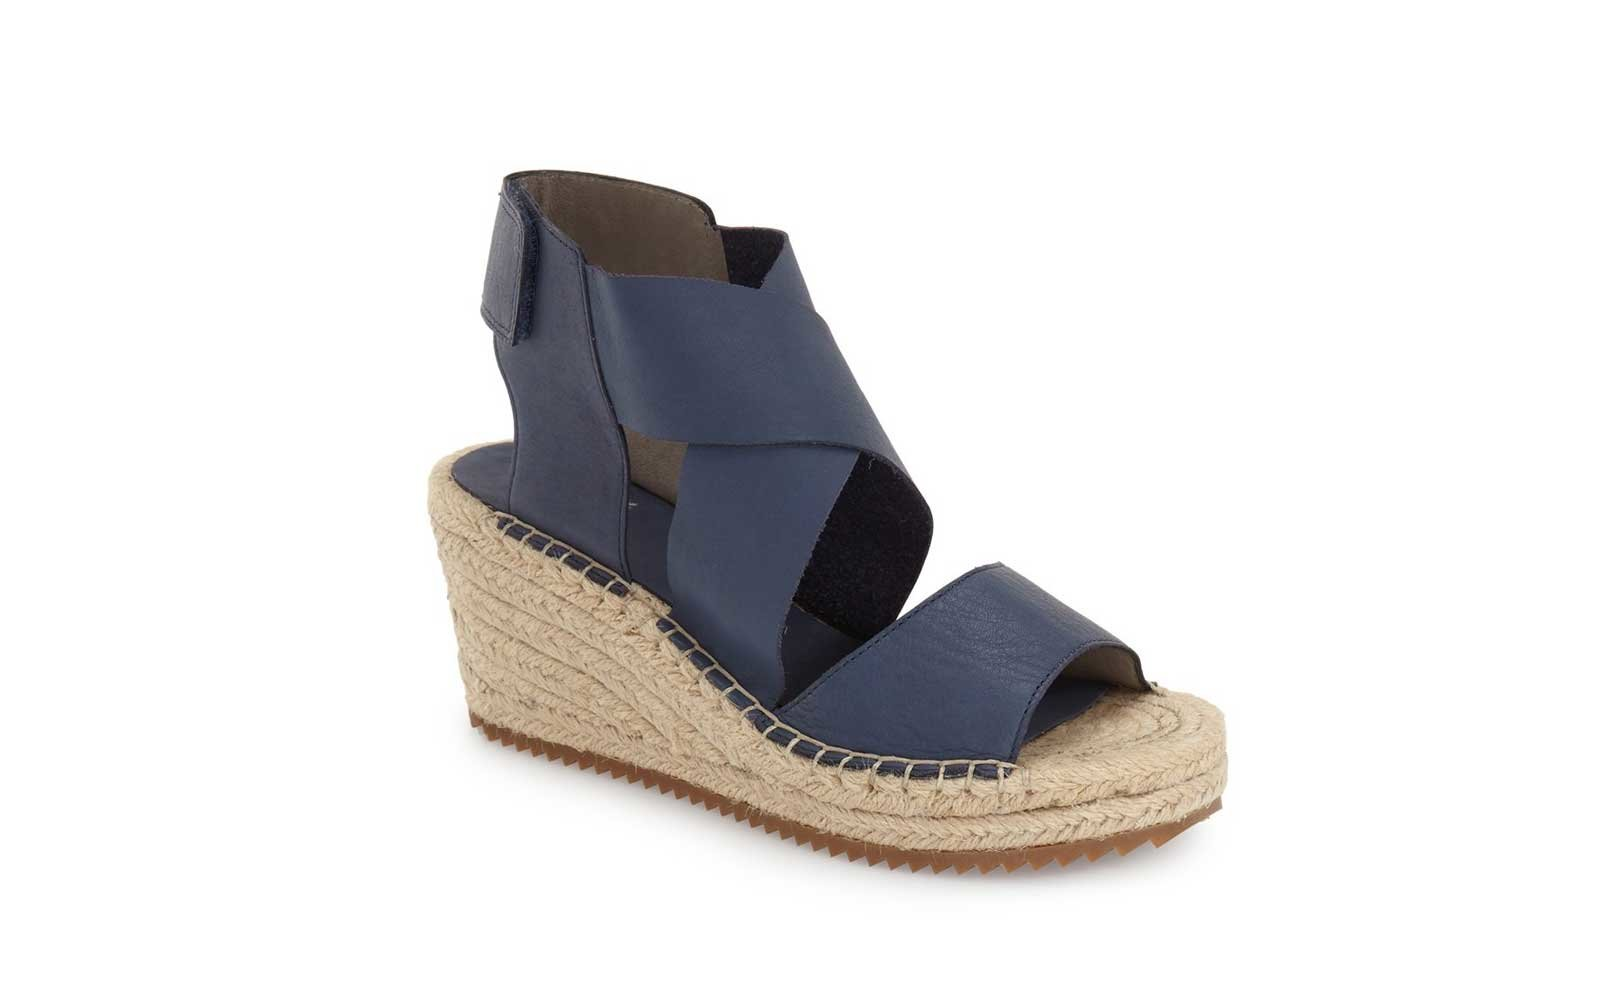 97913331c Walkable Wedges  Eileen Fisher  Willow  Espadrille Wedge Sandal